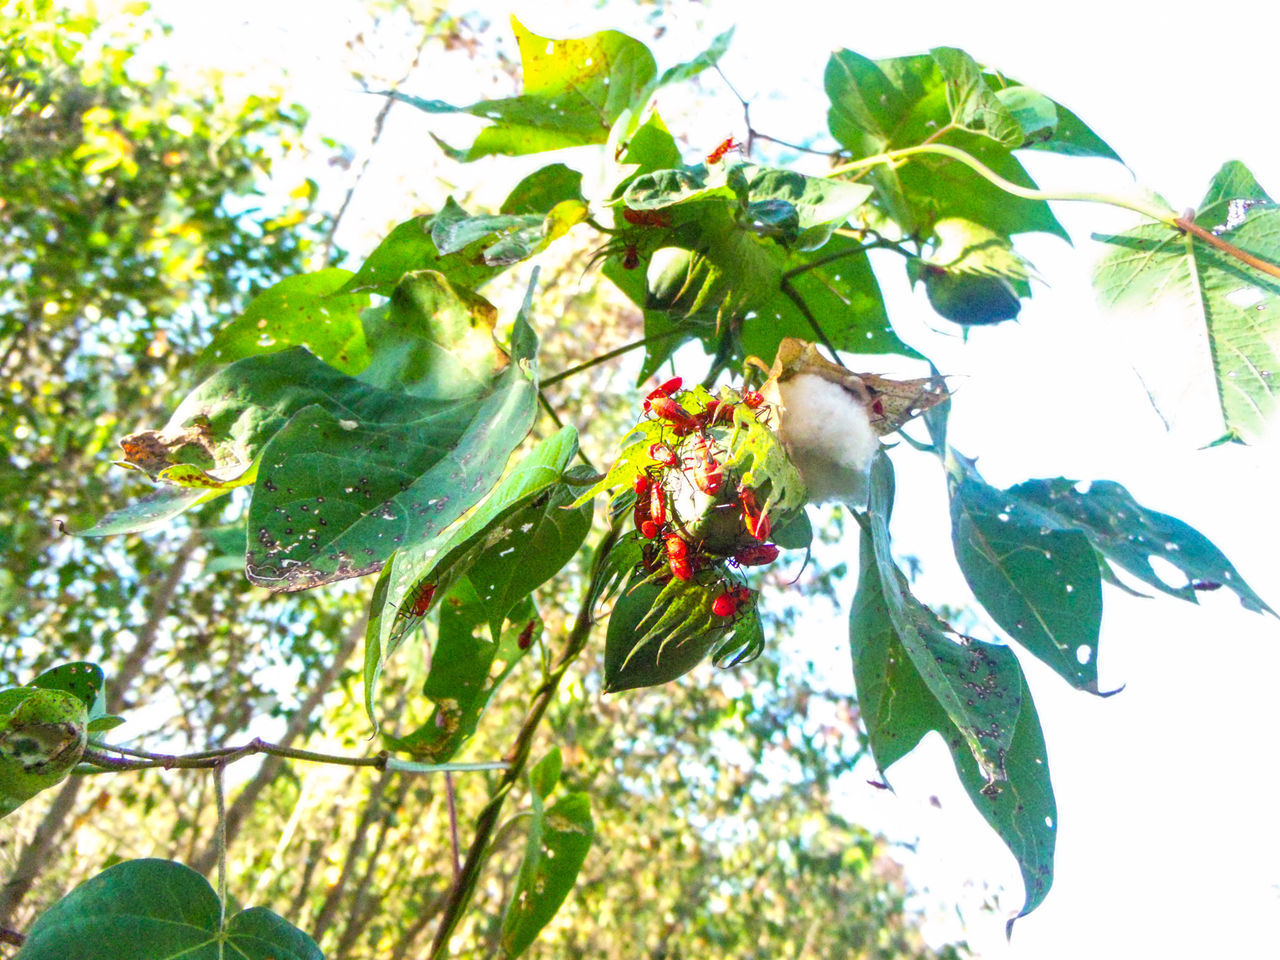 Beetle Branch Check This Out Cotton Day Green Insect Leaves Love Bugs Low Angle View Nature Outdoors Tree Twig